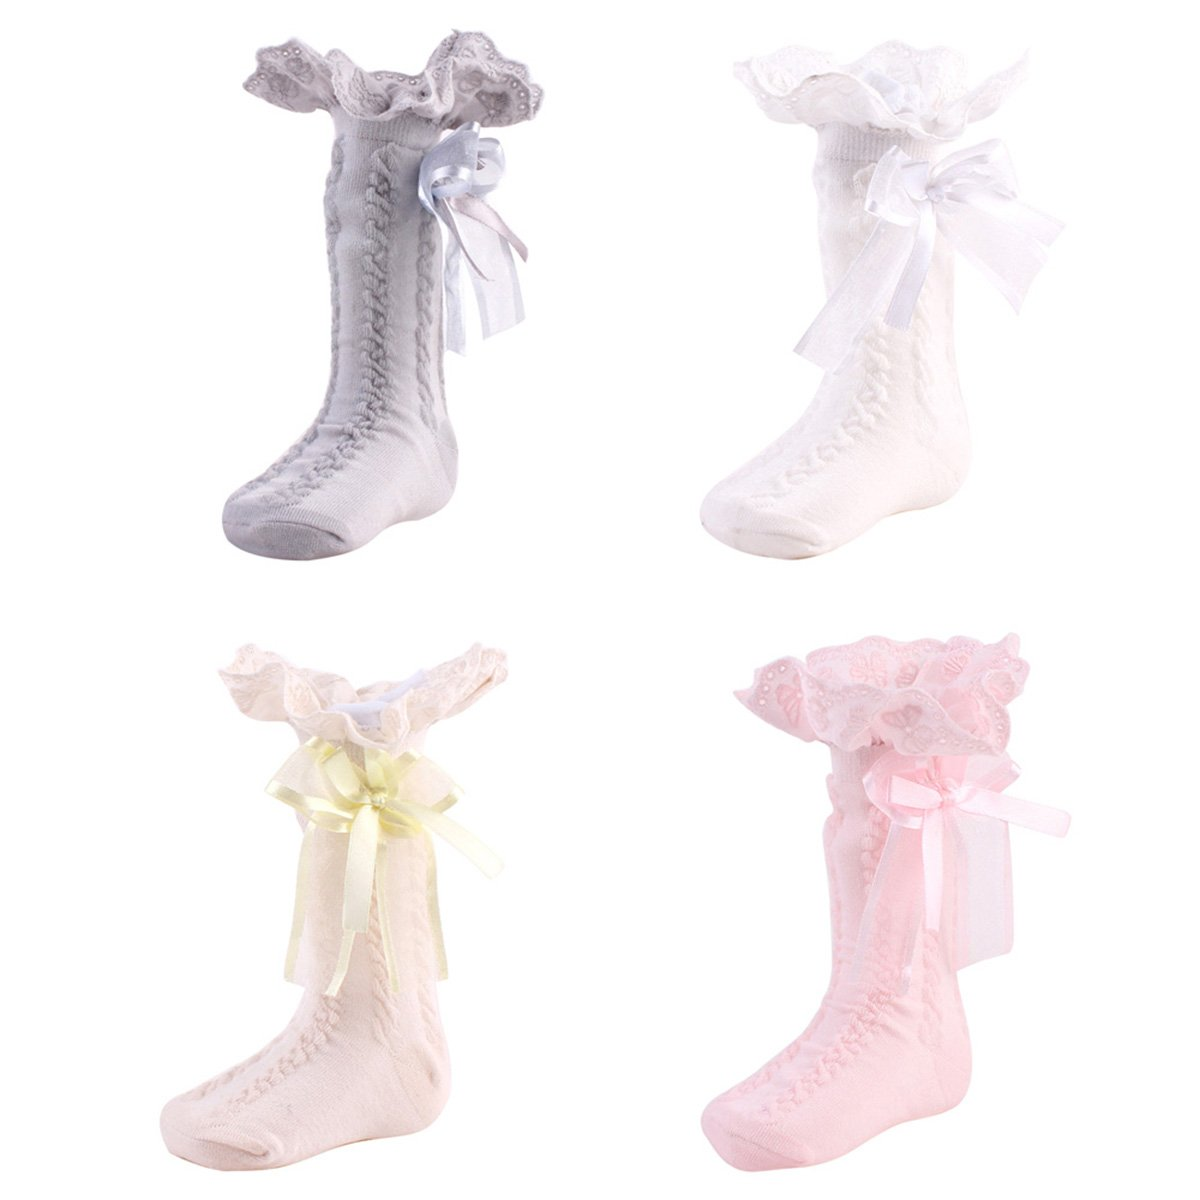 Size : S Yuniroom 0-4Y Baby Toddler Kids Cotton Lace Lining Socks Soft Comfortable Stocking